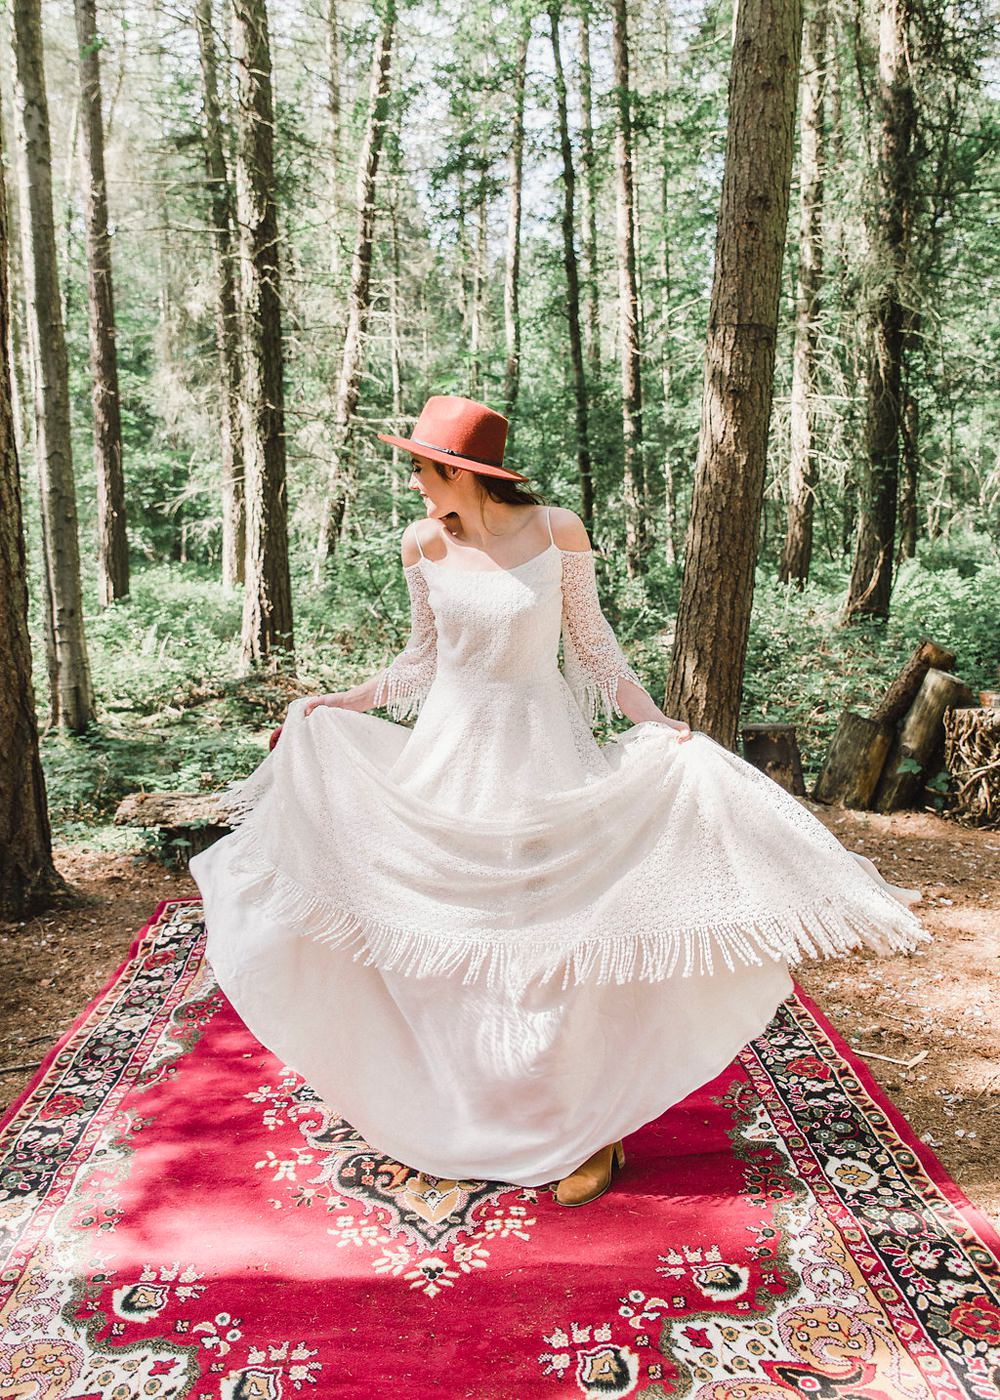 Fedora Hat Accessory Bride Bridal Gown Dress Fringed Tassel Bohemian Sleeves Train Boho Woodland Wedding Ideas Camp Katur Emily Olivia Photography